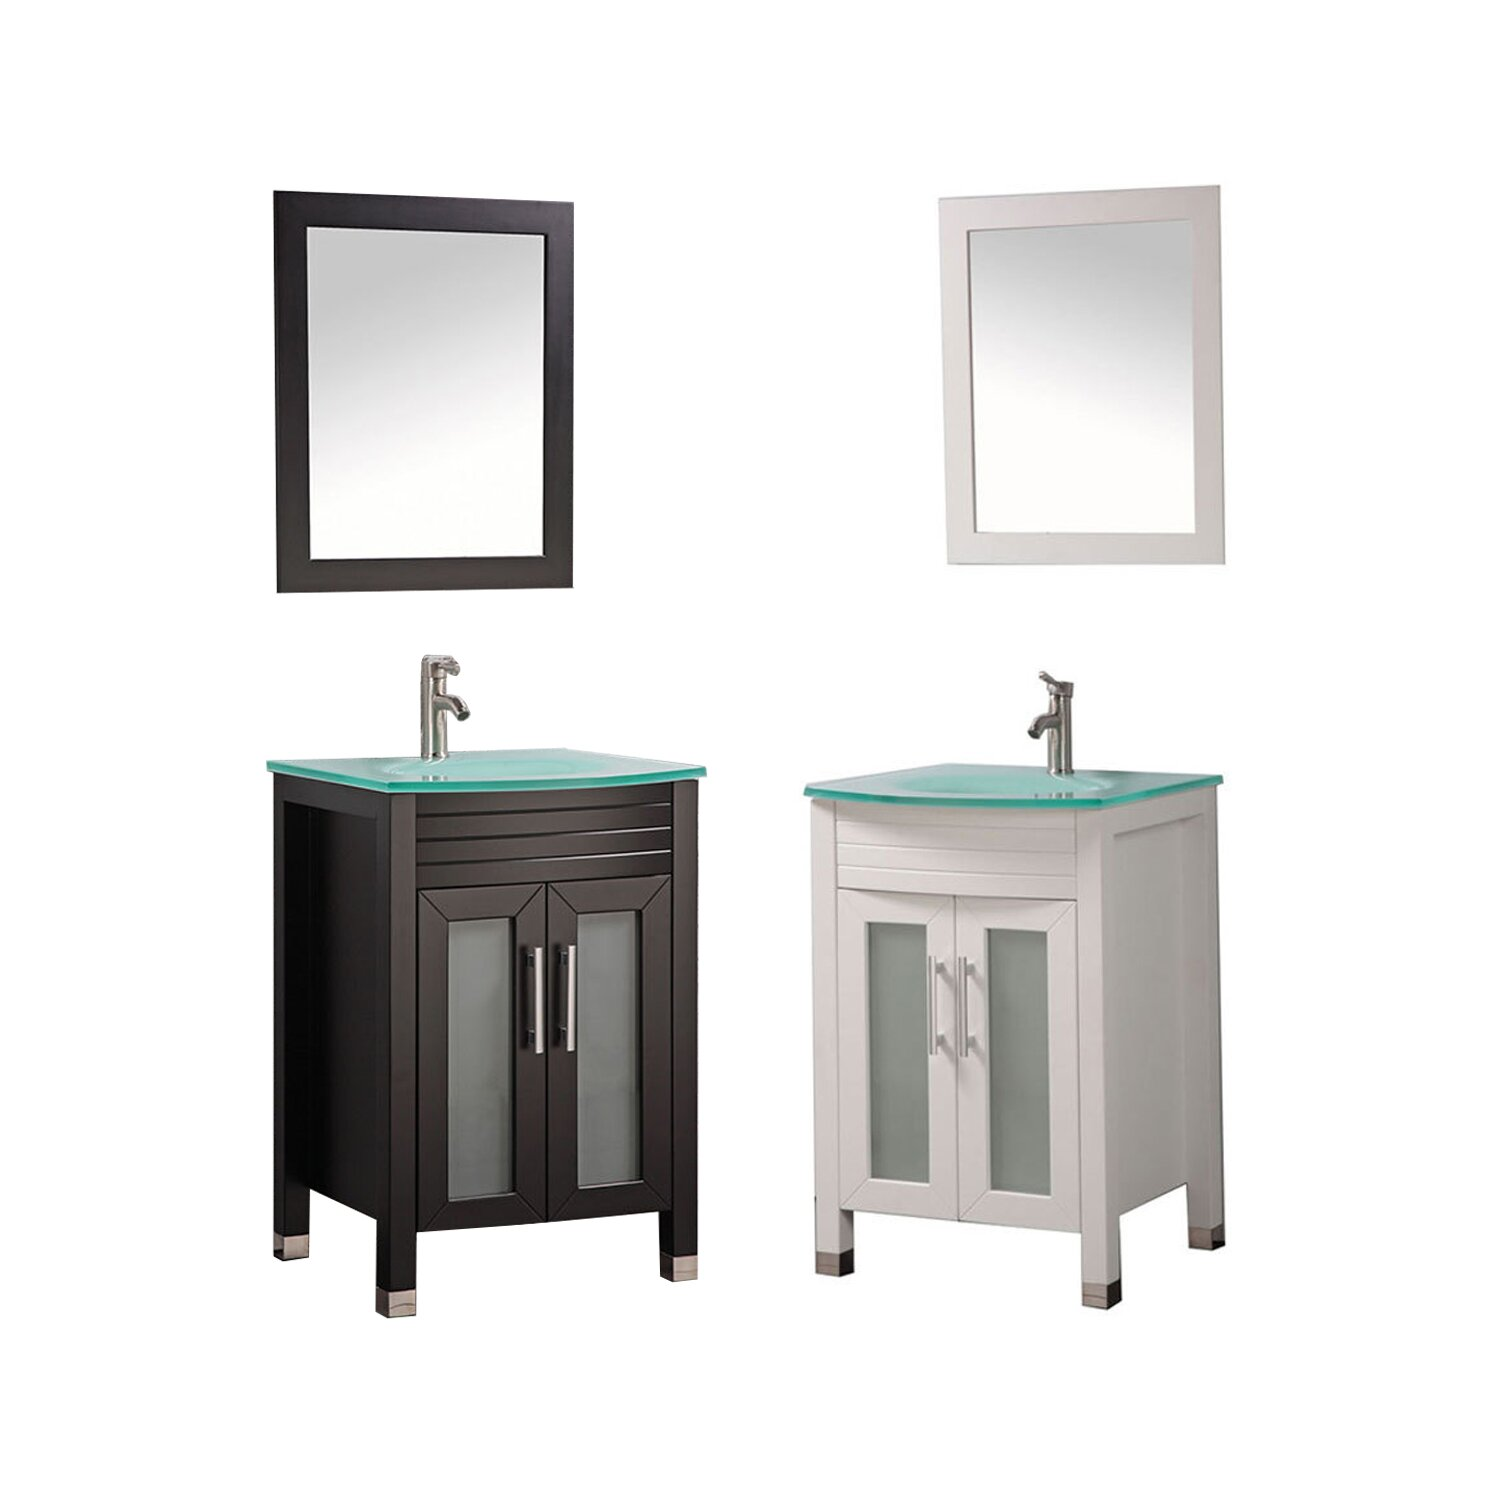 Mtdvanities figi 24 single sink bathroom vanity set with mirror reviews wayfair Bathroom sink and vanity sets